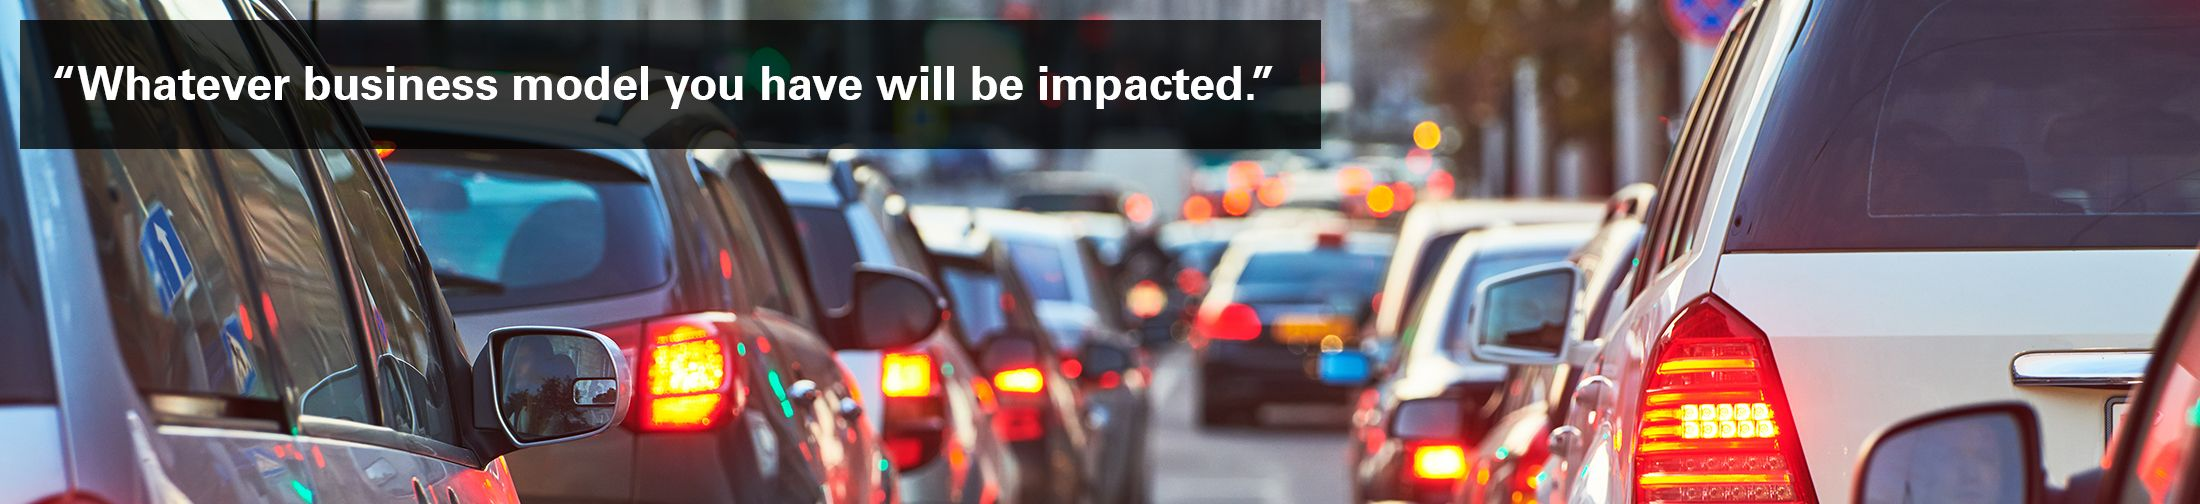 """Long line of traffic with text overlaid: """"Whatever business model you have will be impacted. """""""